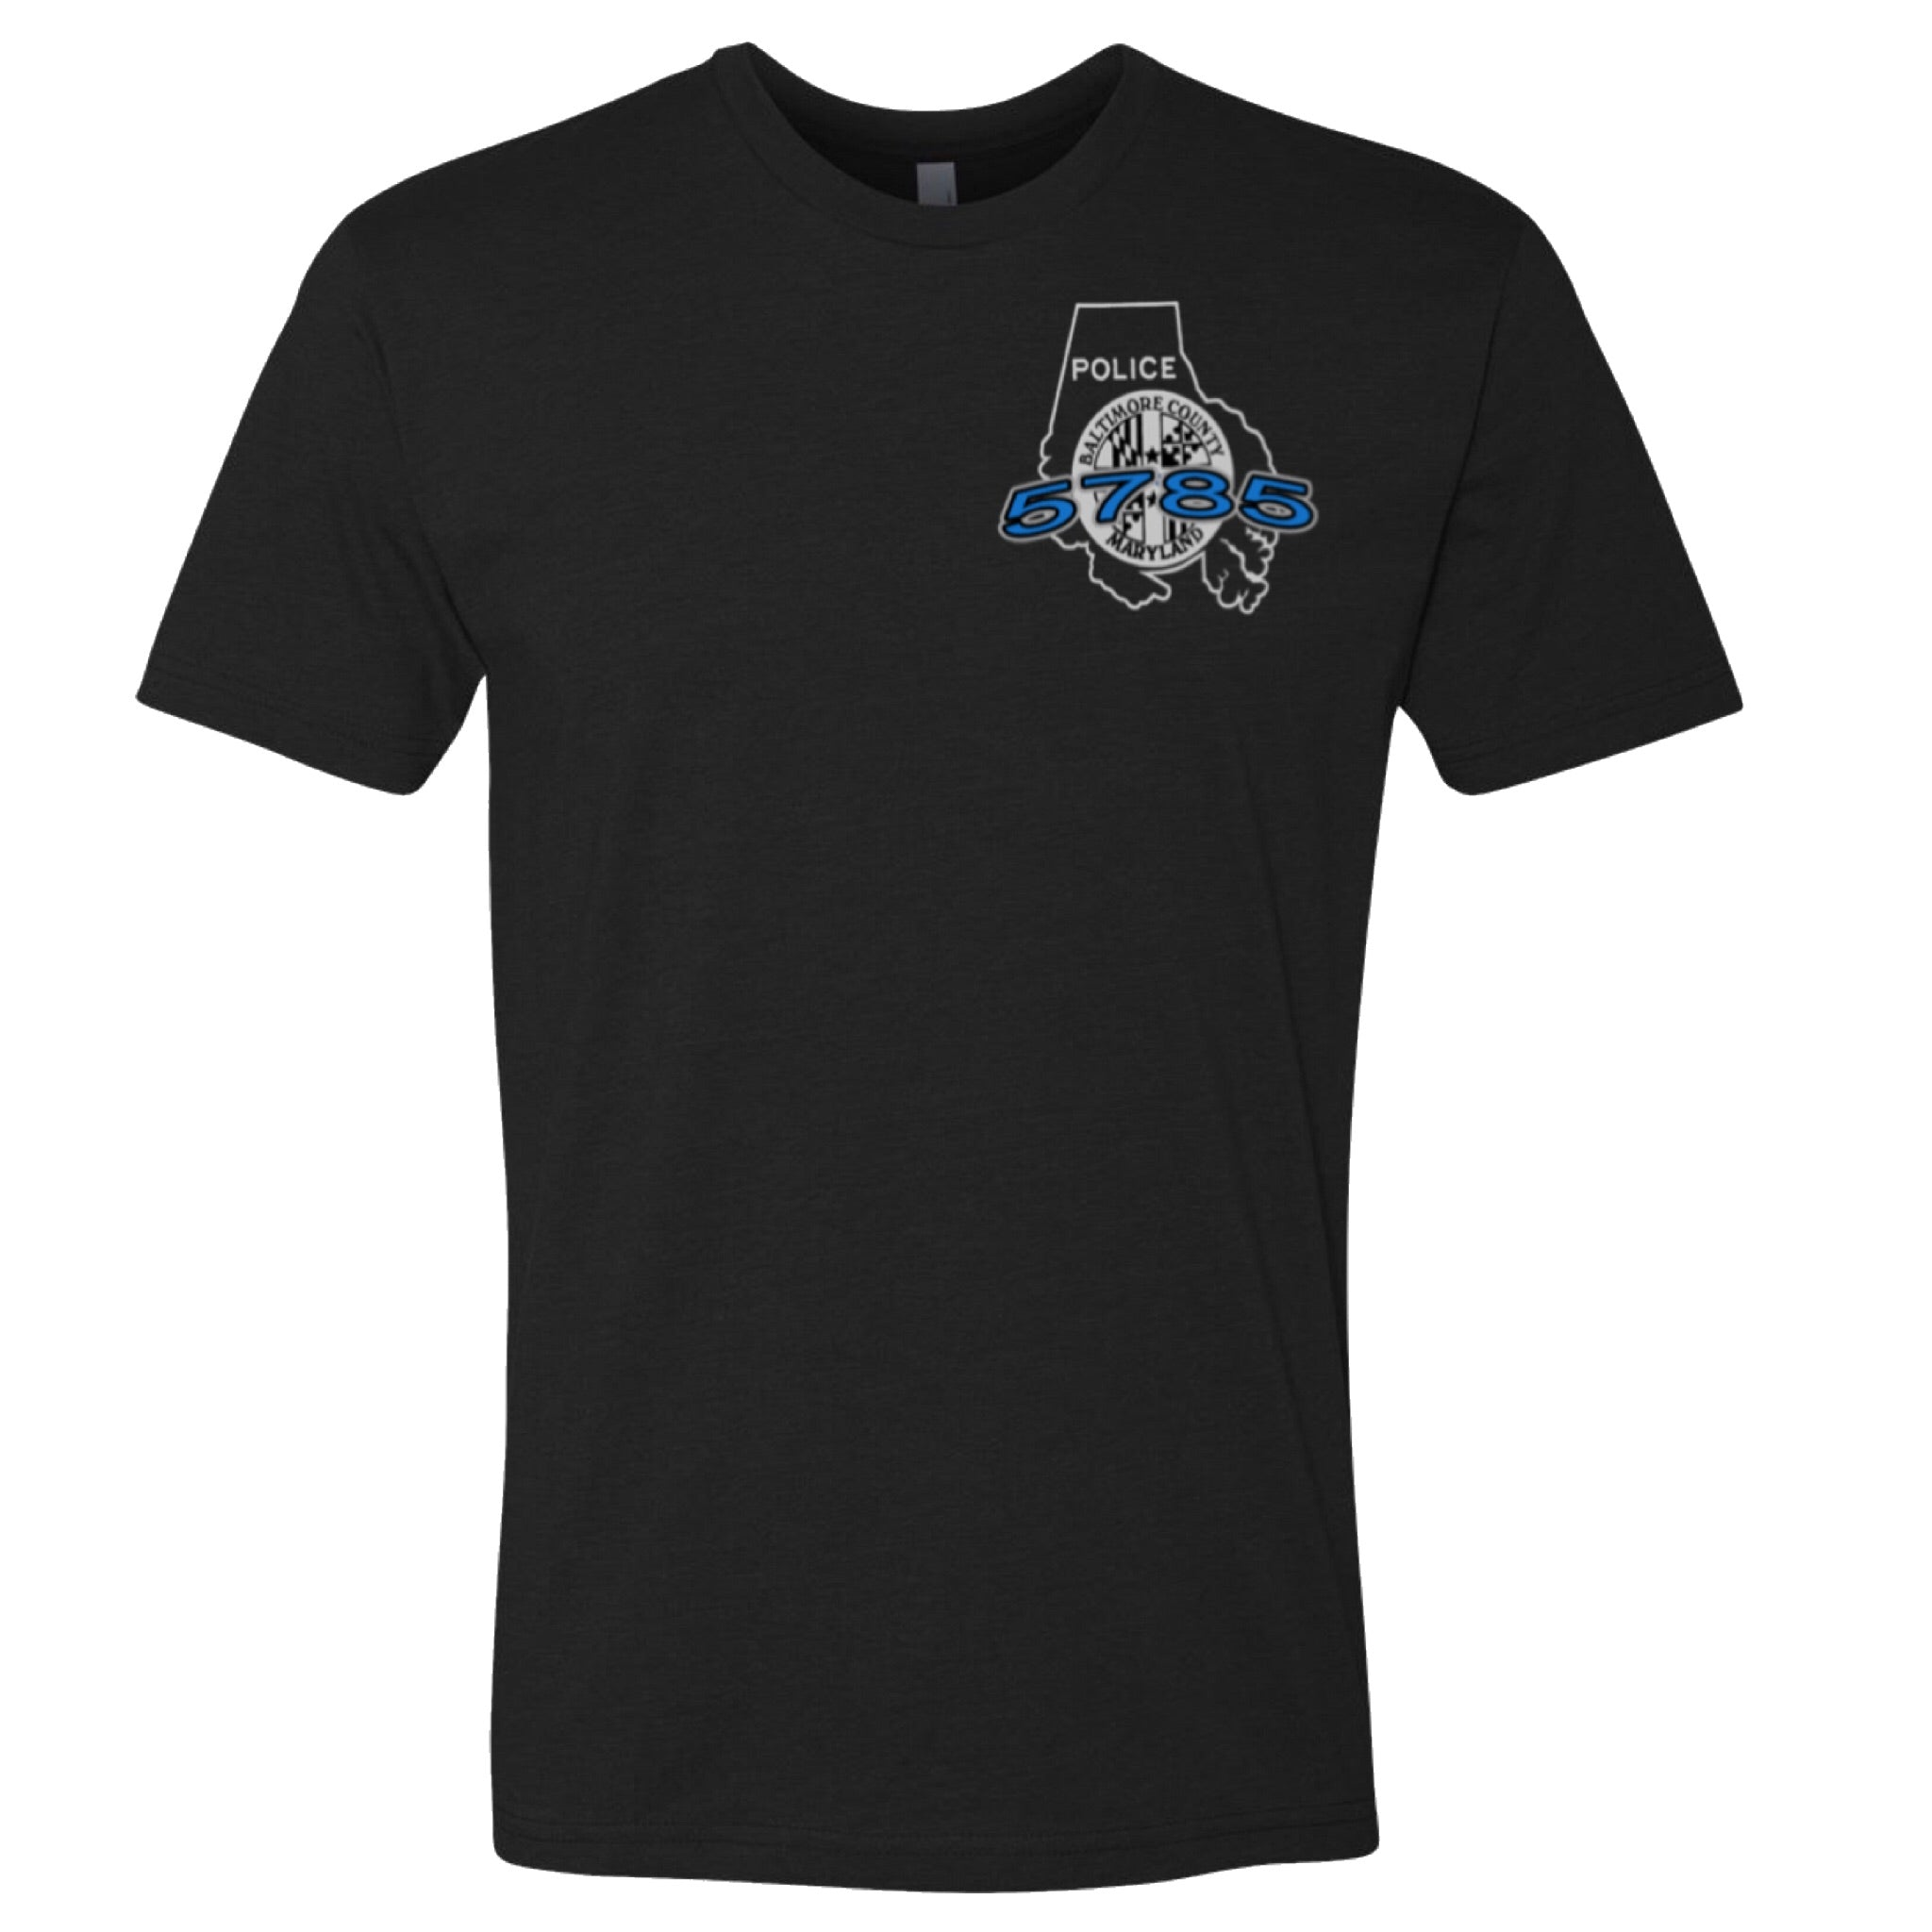 Officer Amy Caprio Memorial Shirt